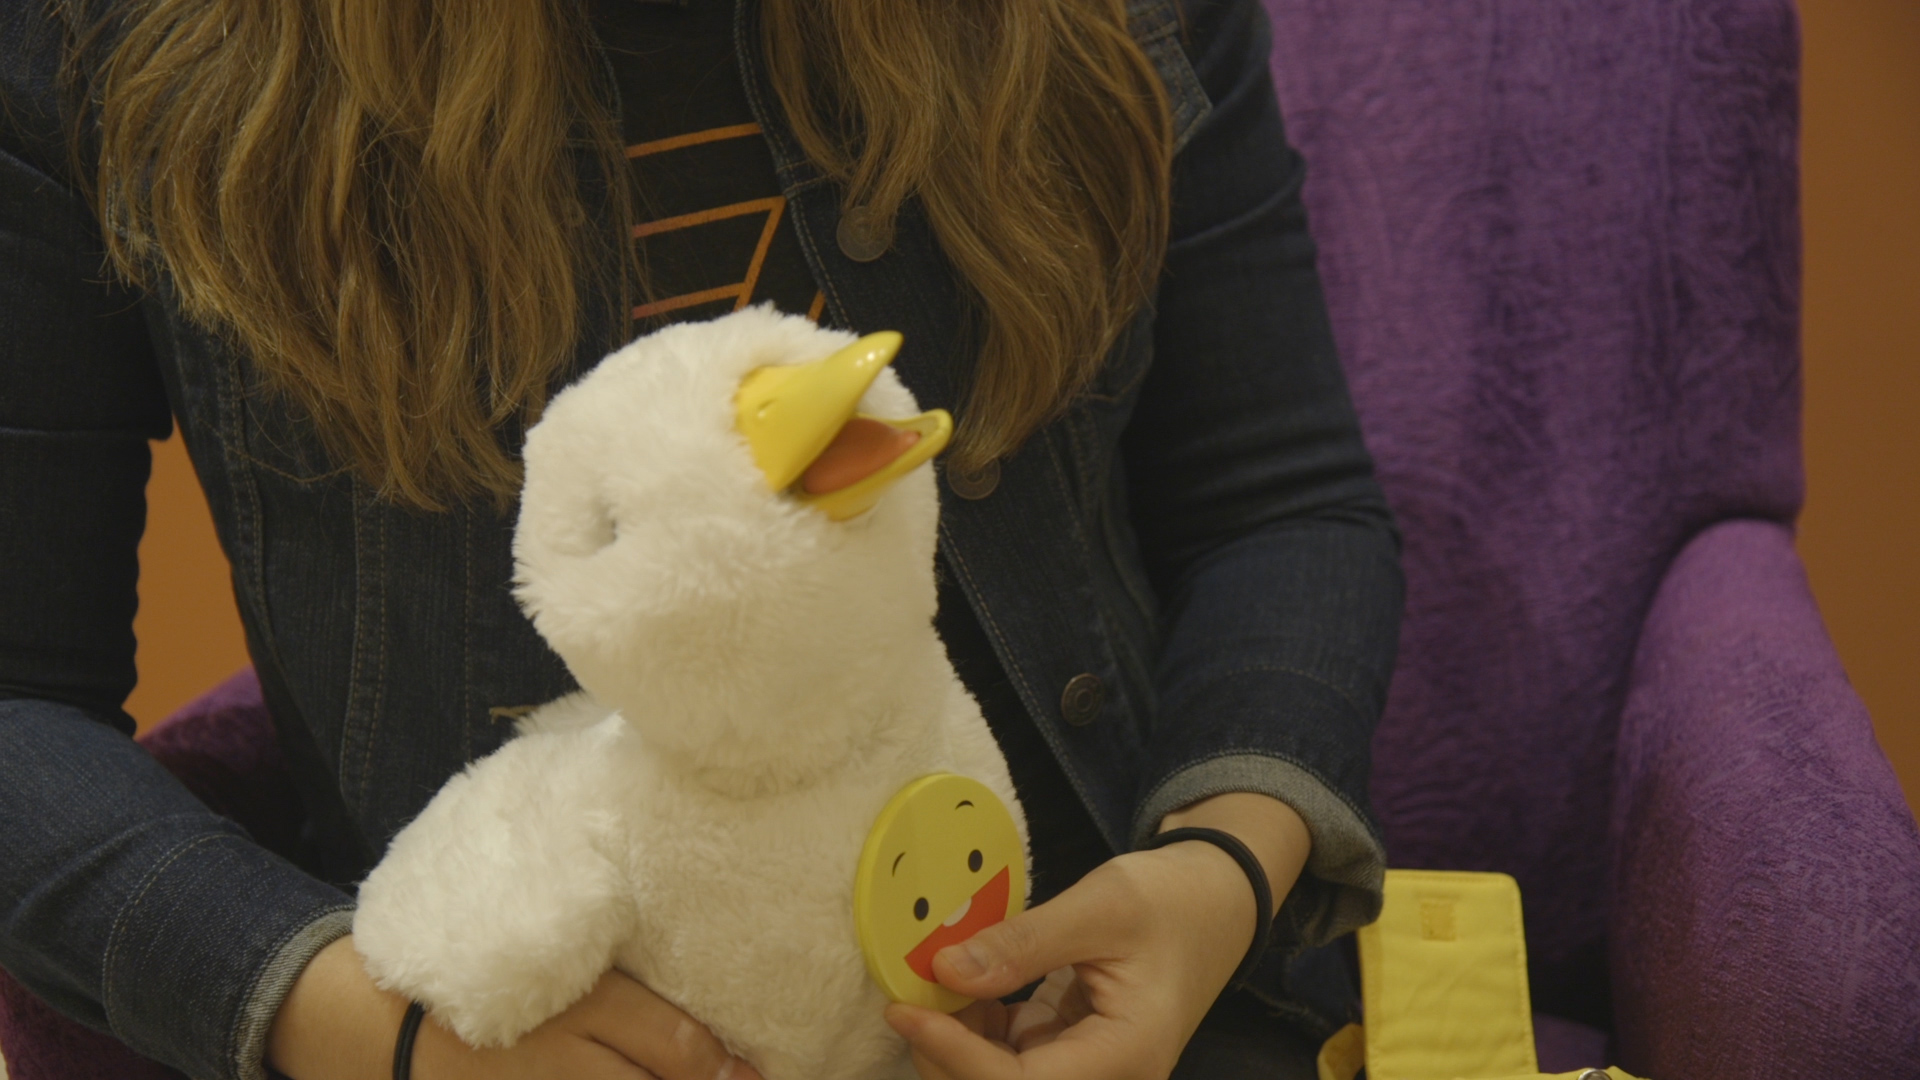 Robot duck hopes to help kids with cancer